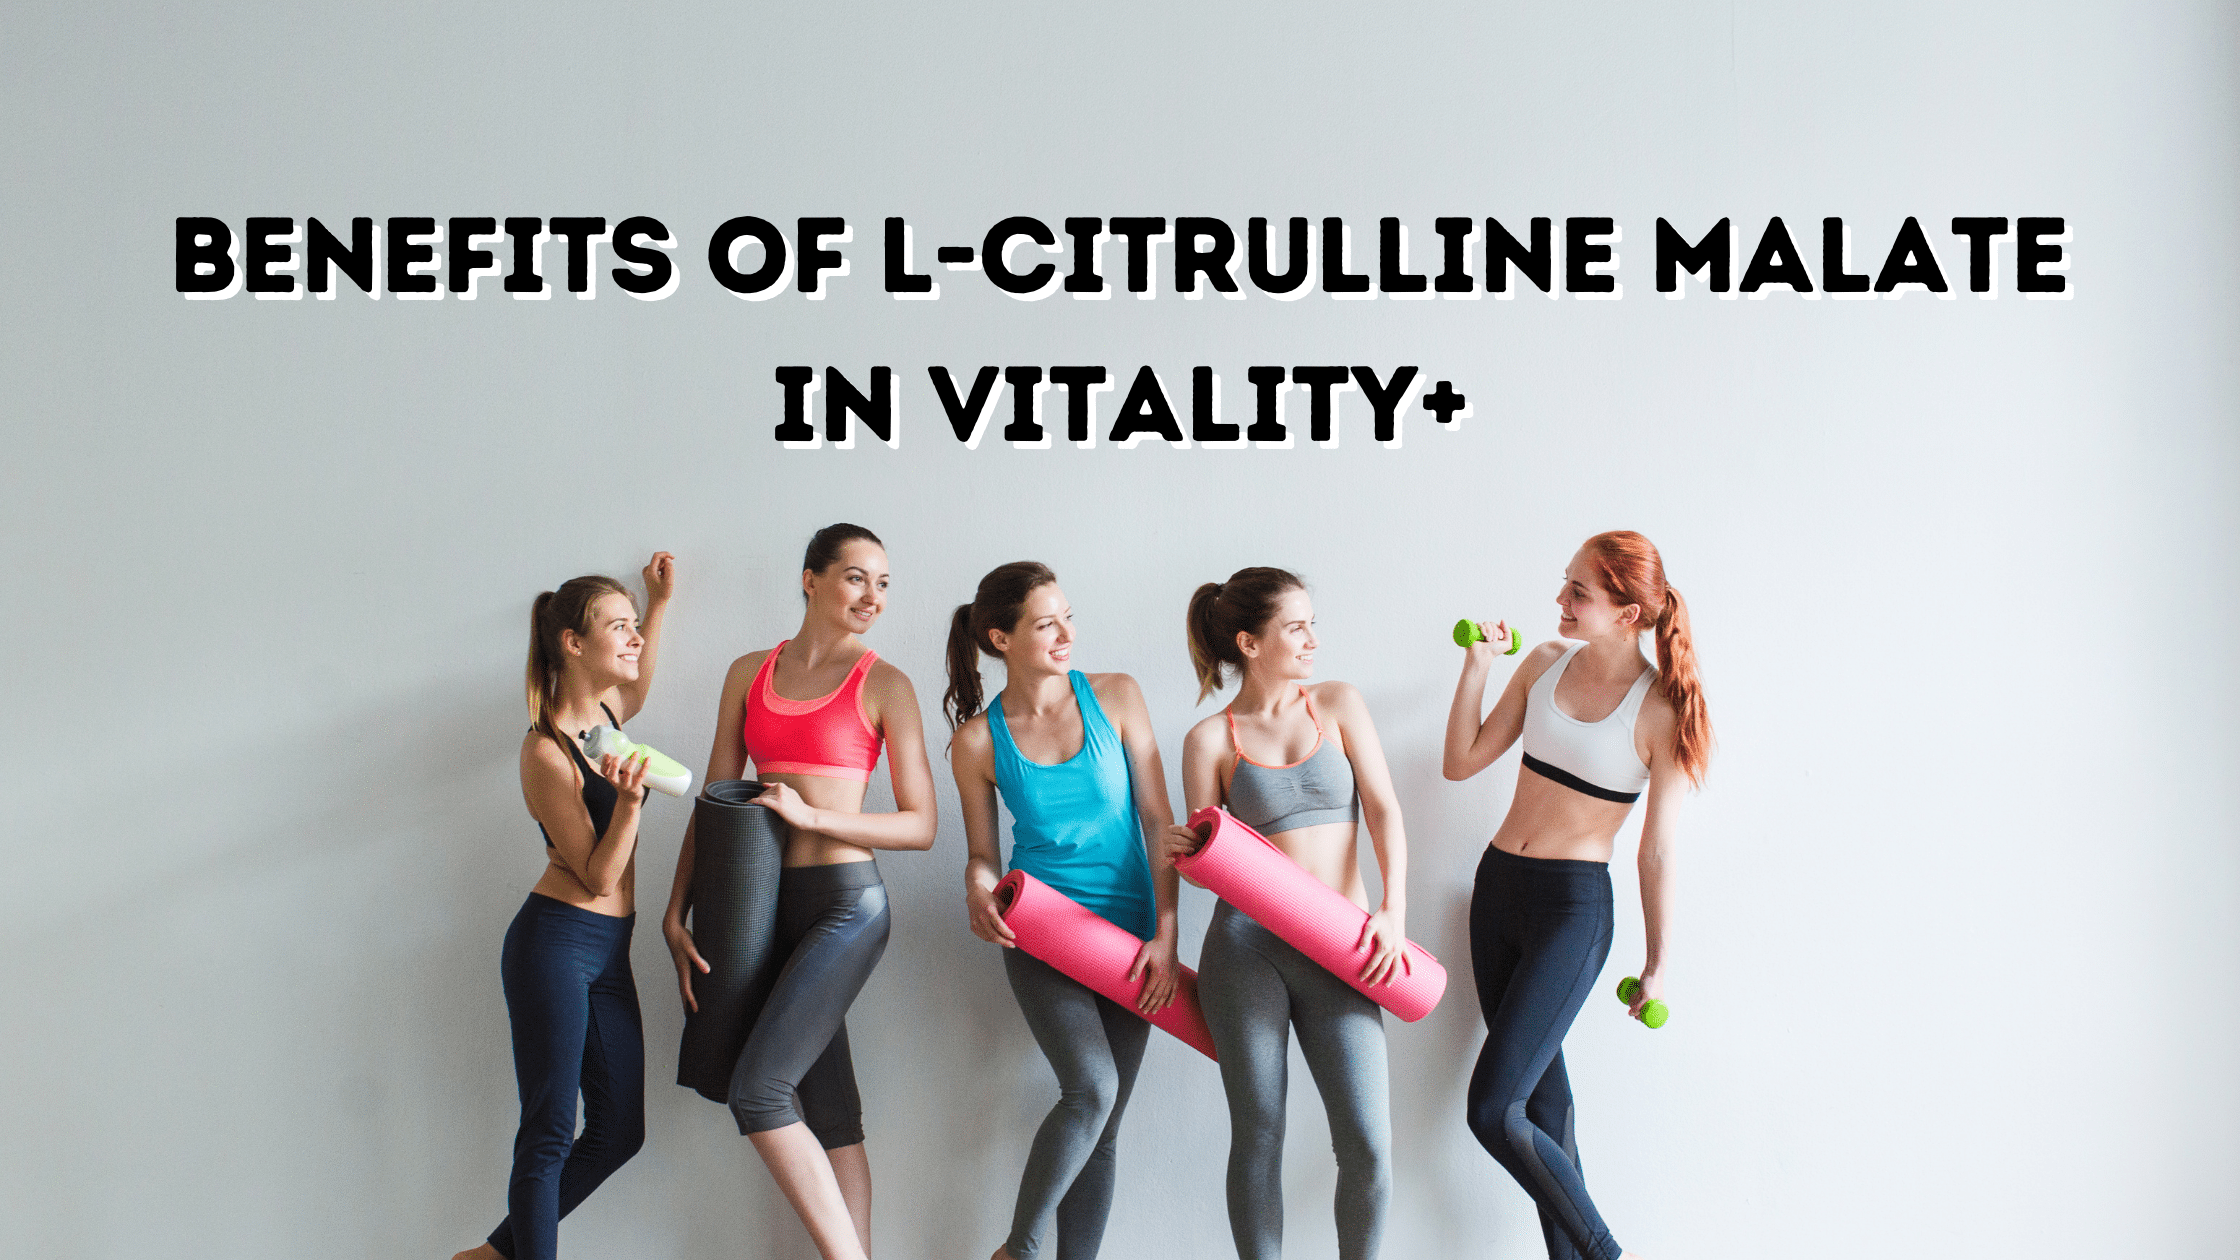 Read more about the article Benefits of L-citrulline malate in Vitality+